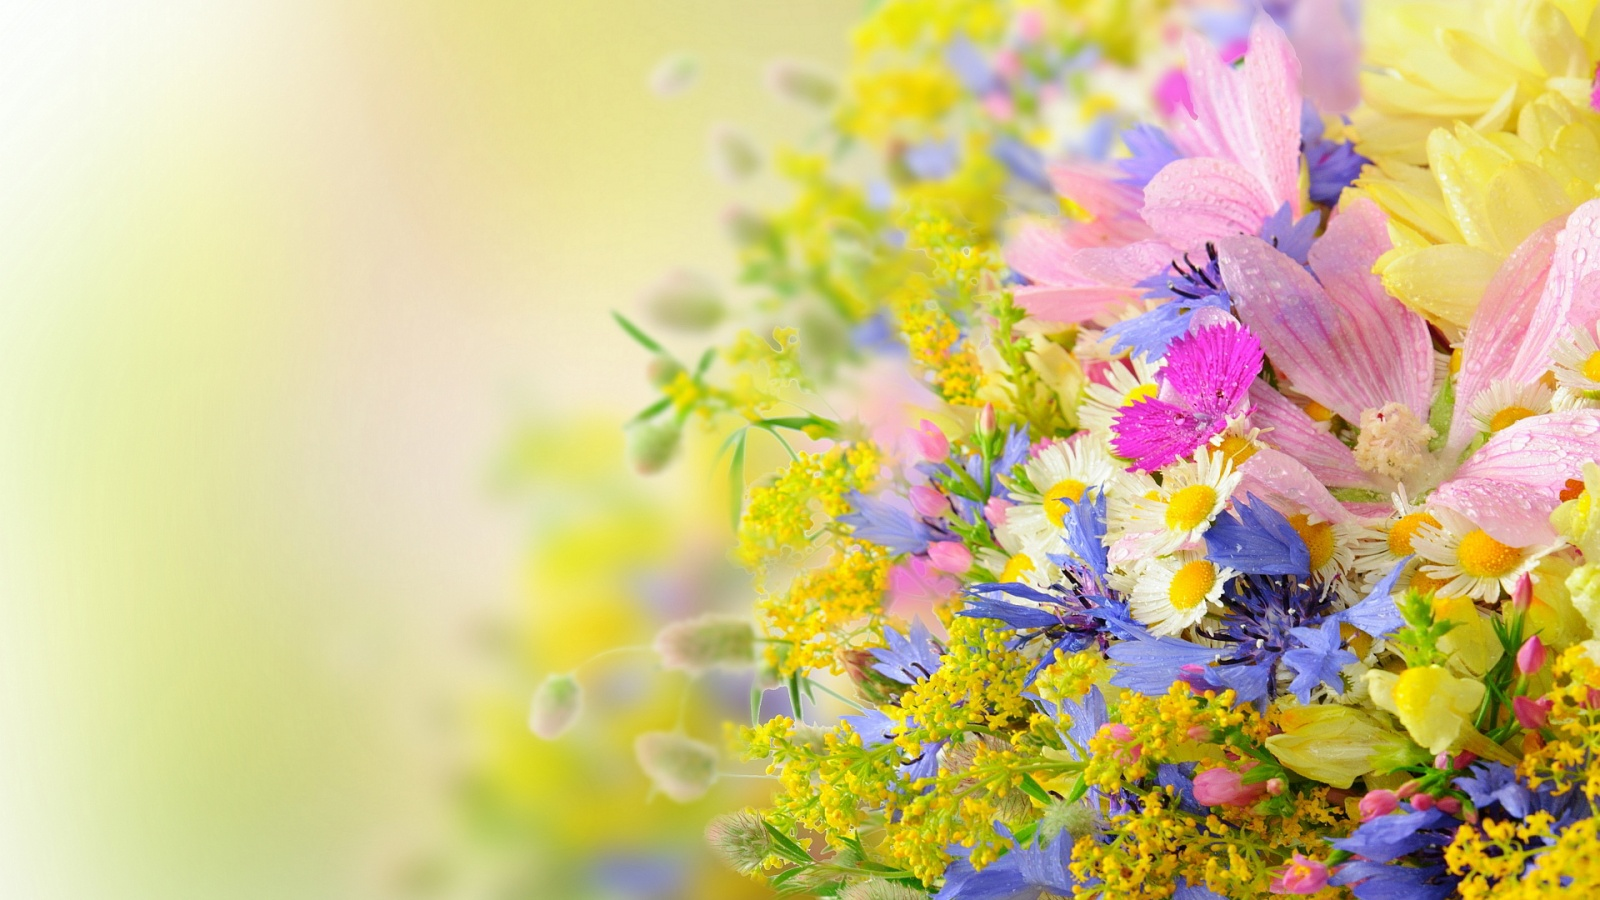 Summer Flowers Wallpaper 1600x900 66724